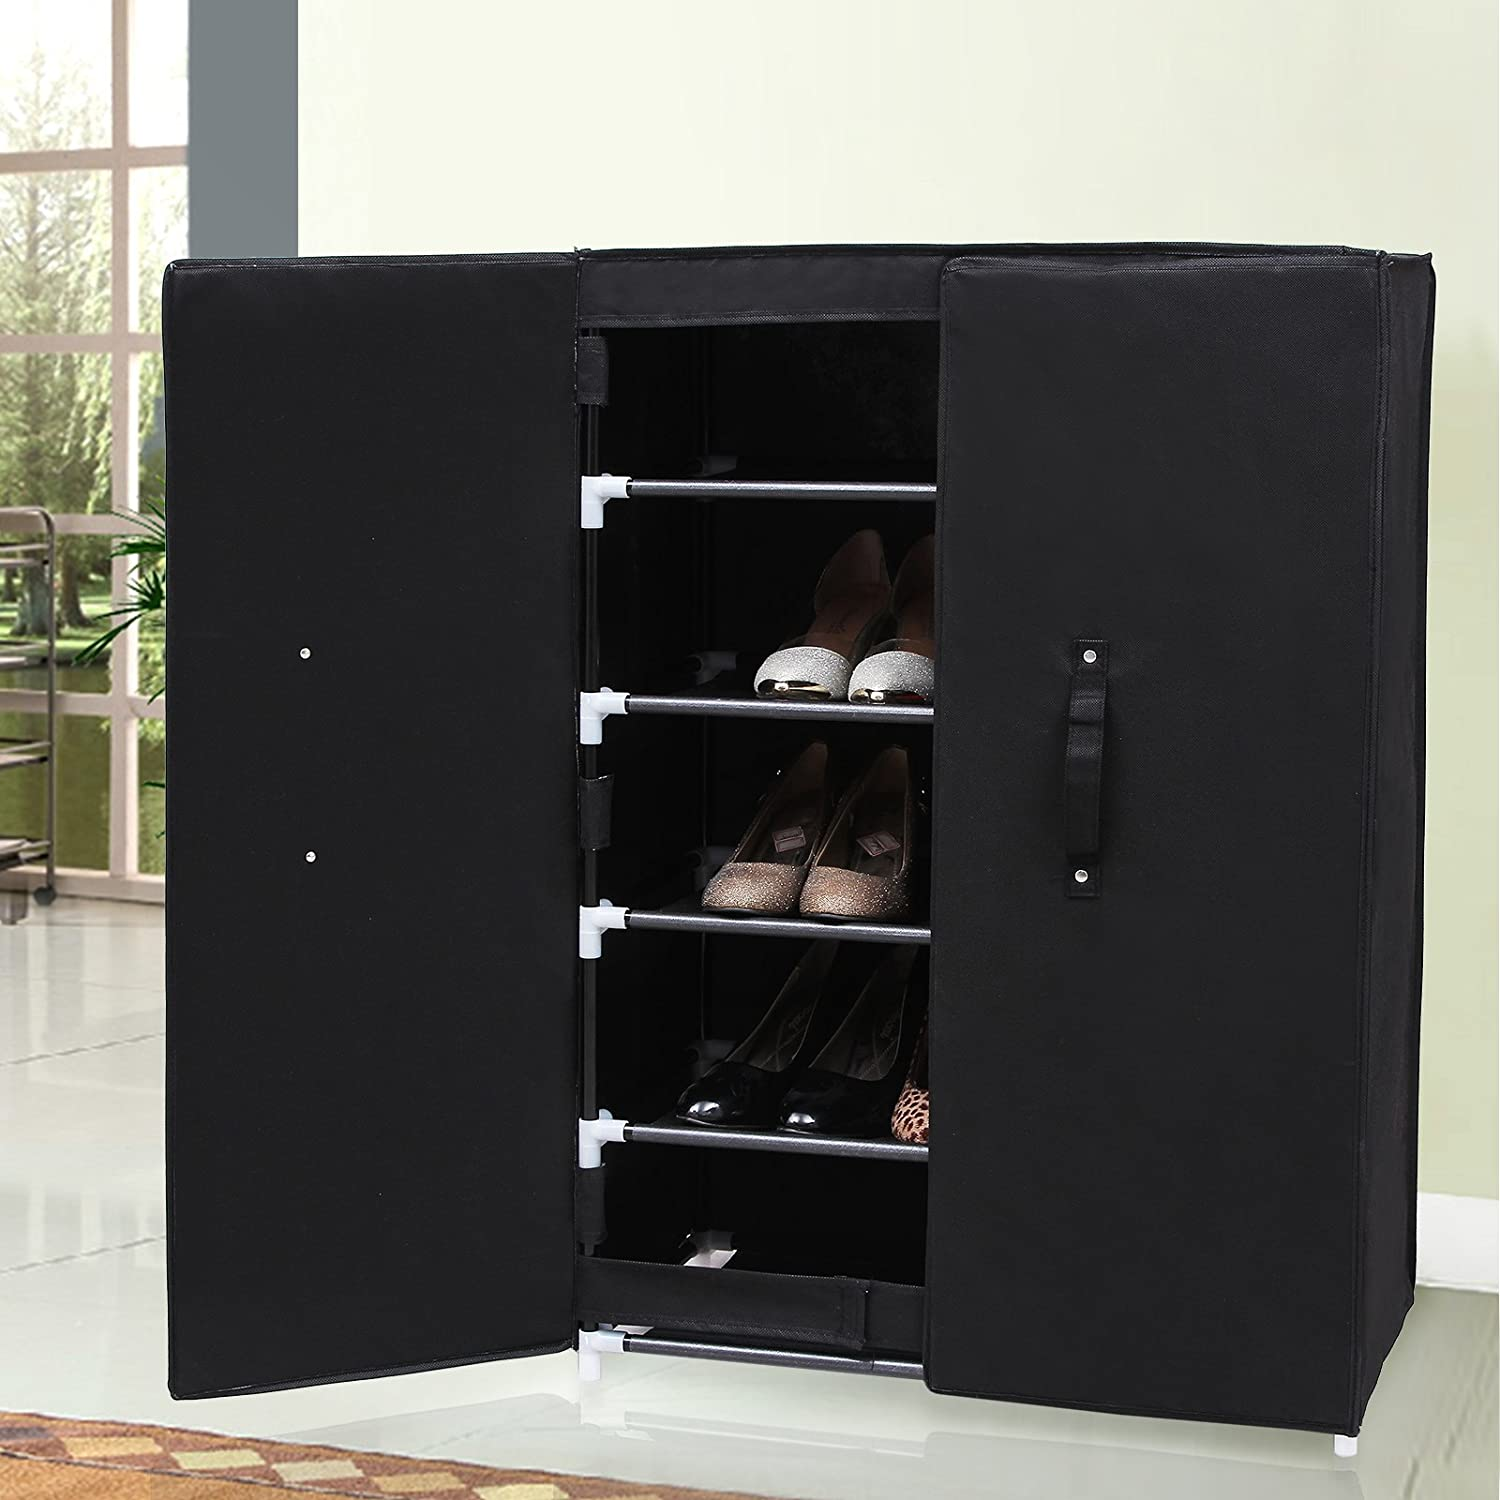 Songmics 6 Tier Shoe Rack Stand With 2 Doors Shoe